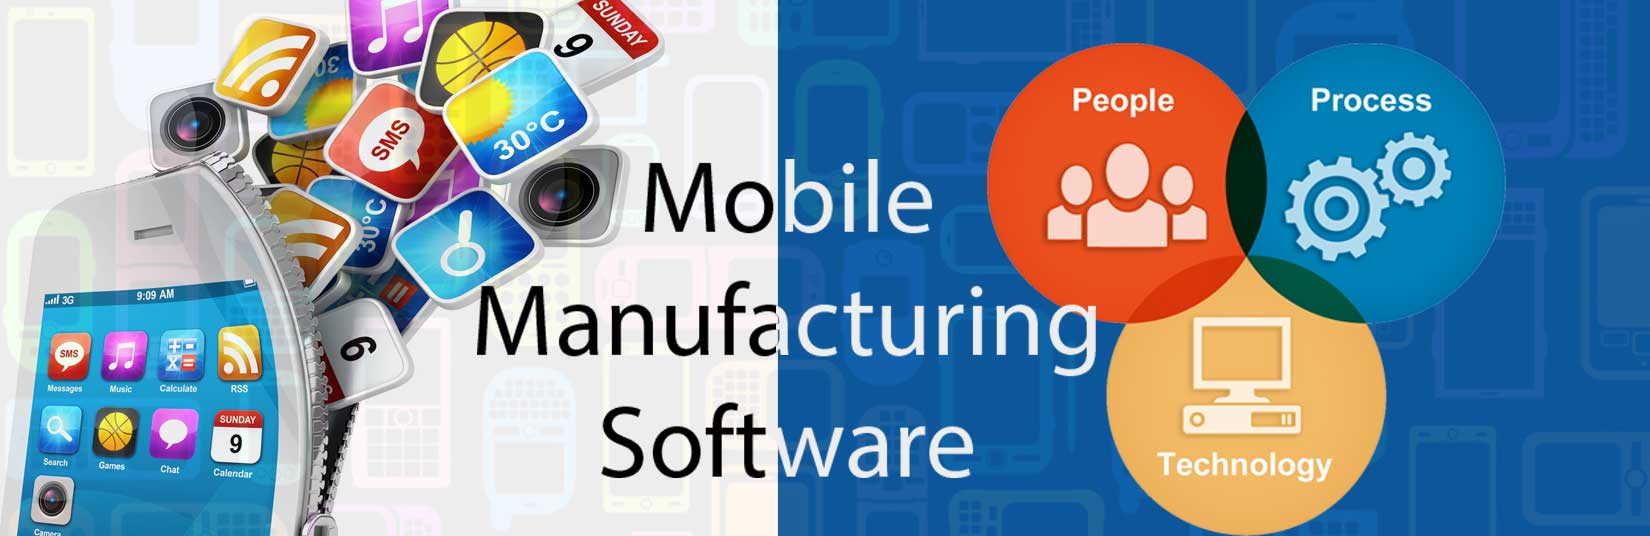 MOM, mobile manufacturing software